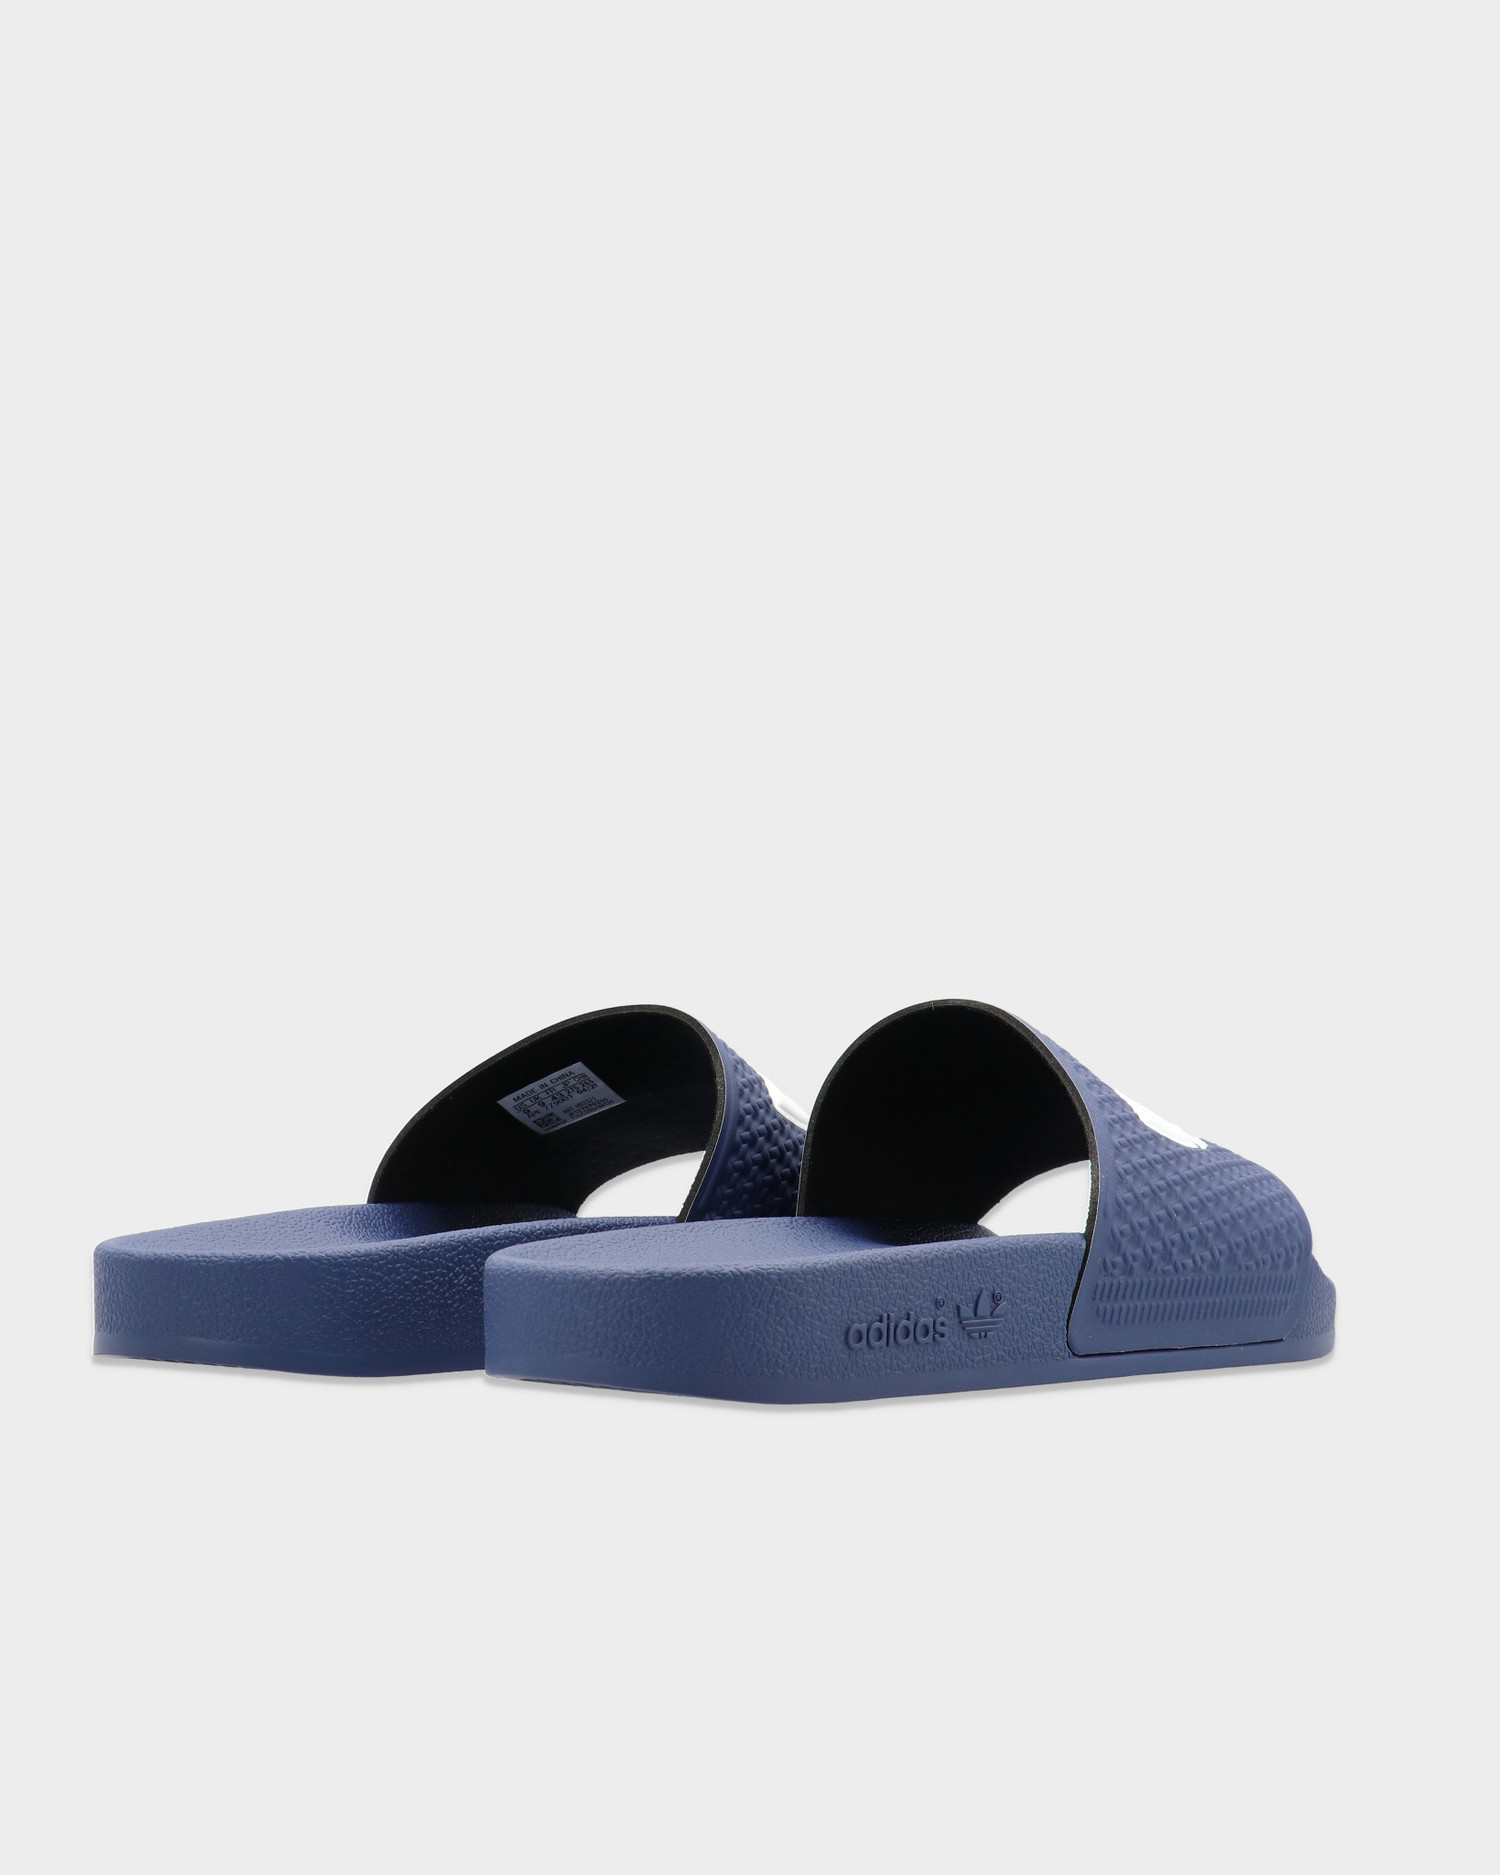 Adidas Shmoofoil Slide Victory Blue/Footwear White/Victory Blue